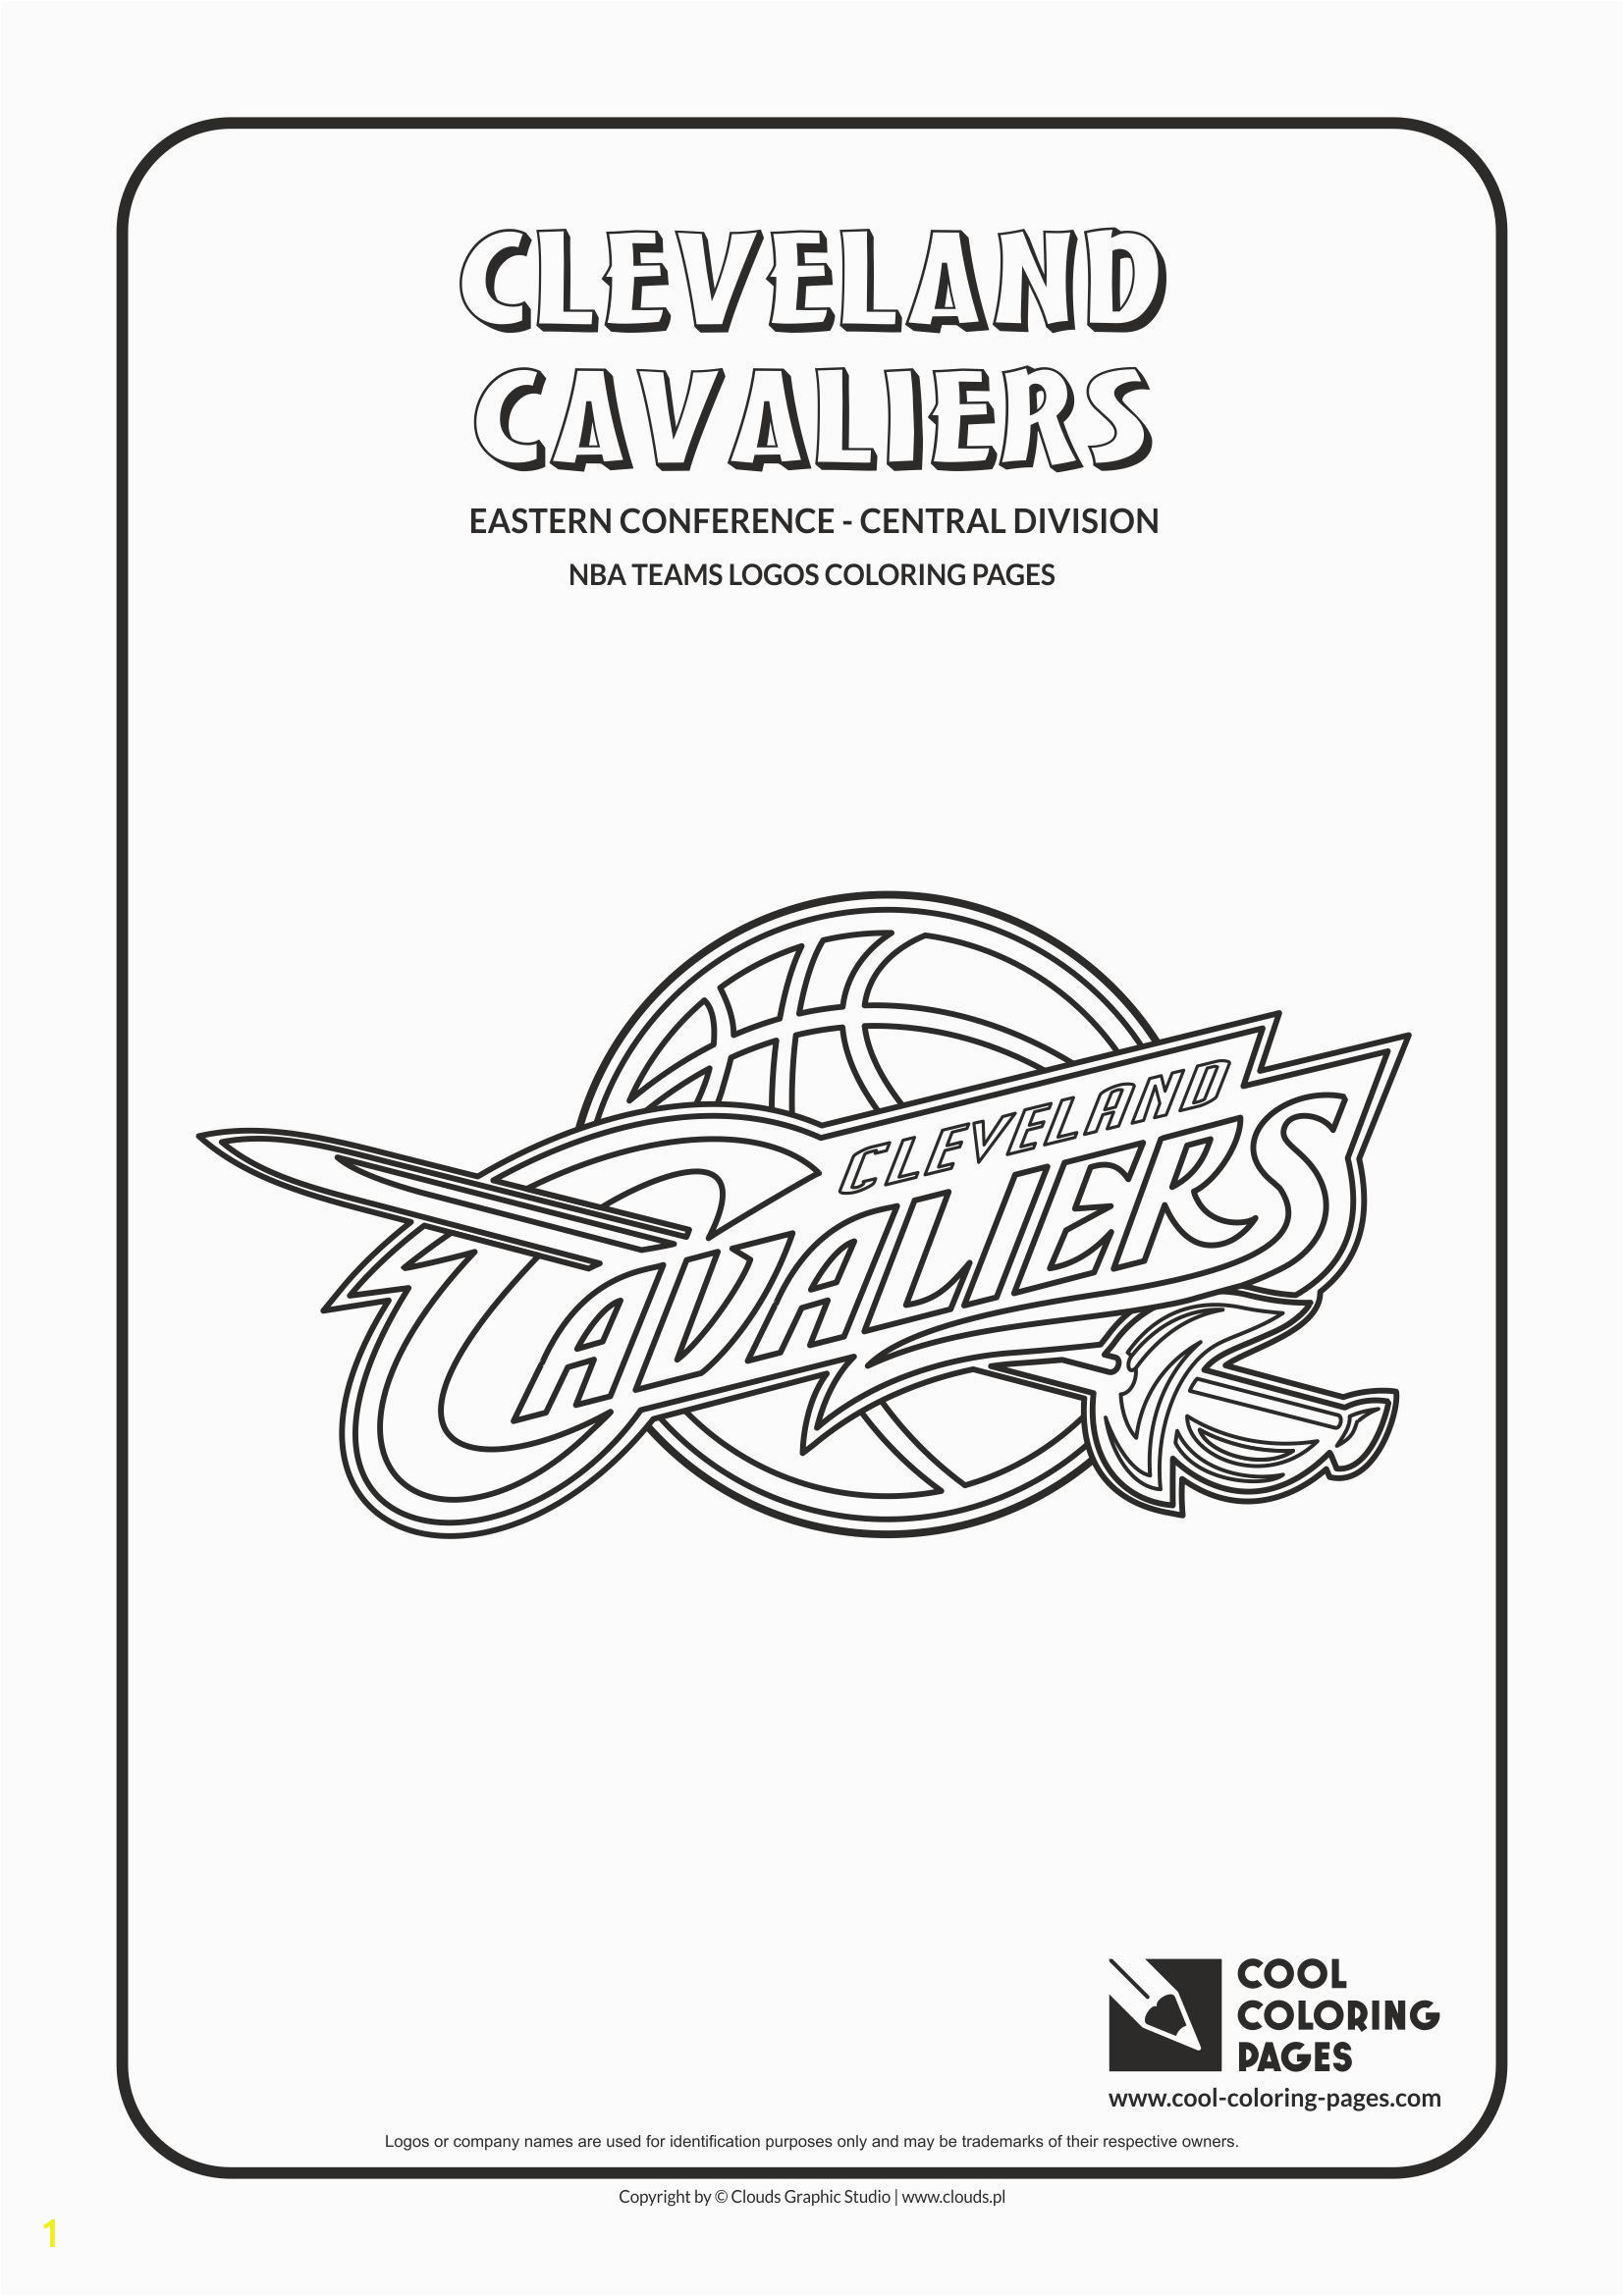 Cool Coloring Pages NBA Teams Logos Cleveland Cavaliers logo Coloring page…